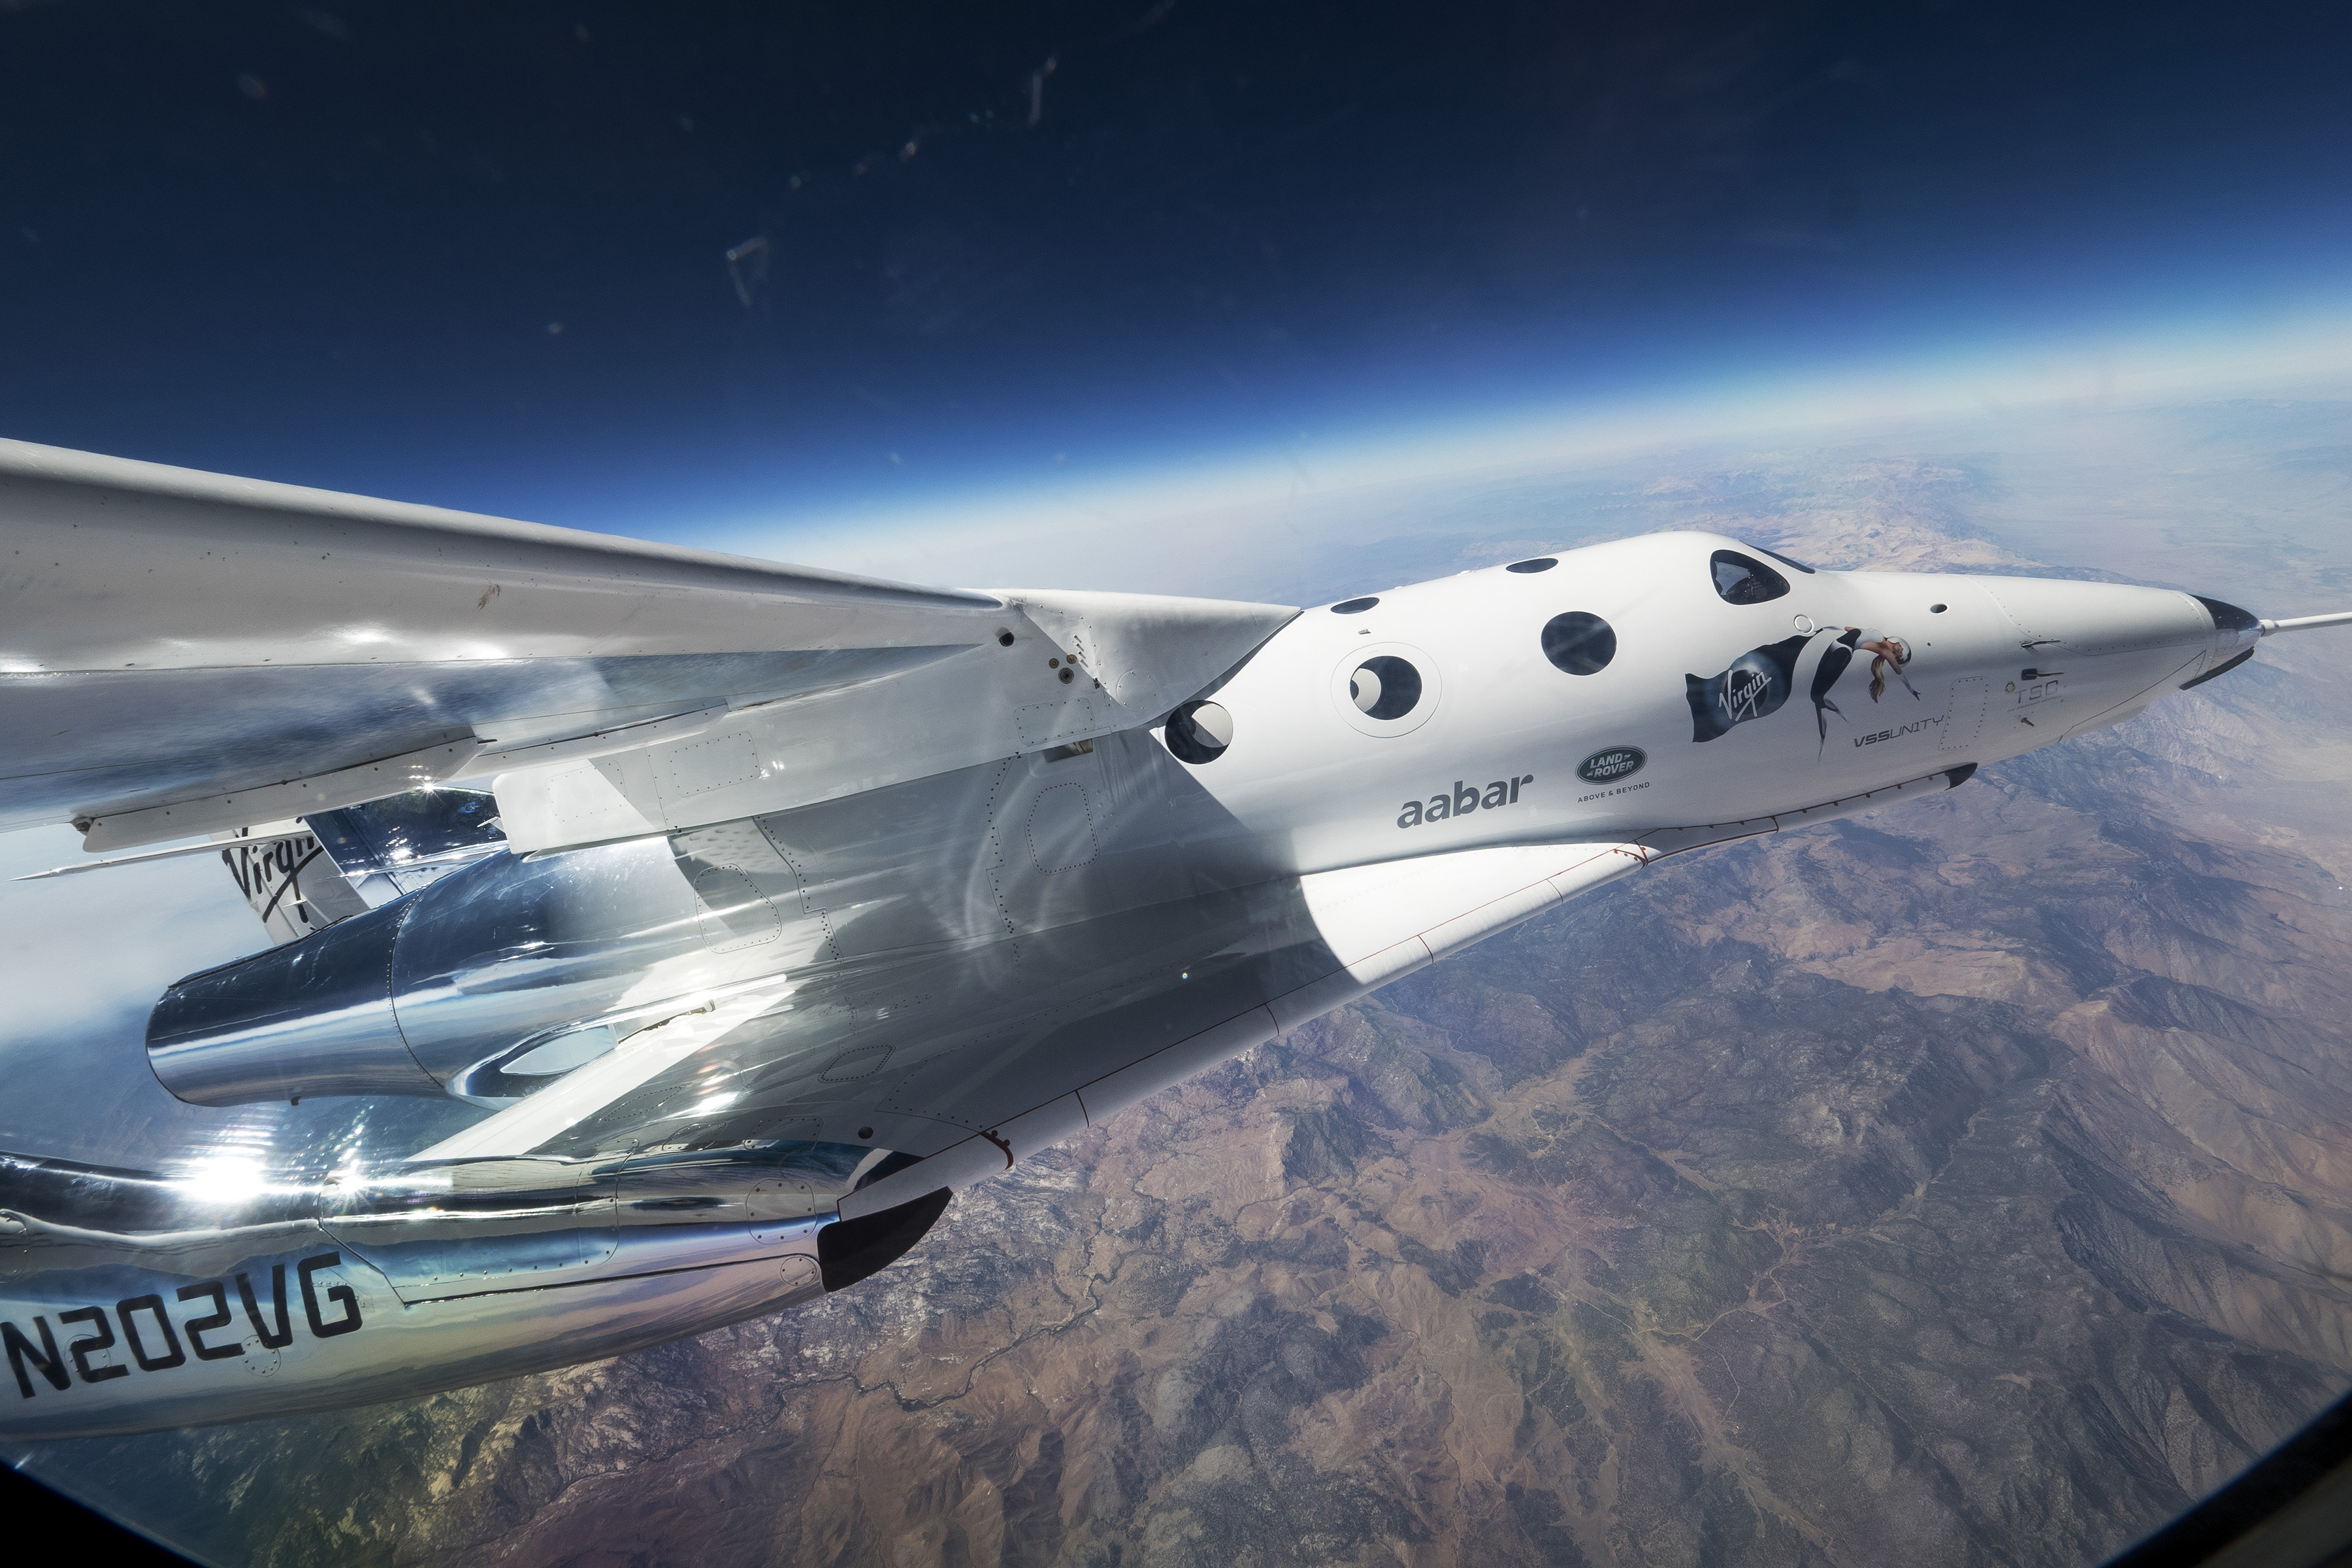 Virgin Galactic's second SpaceShipTwo, the VSS Unity, takes its first flight with its carrier plane Eve as they soar over Mojave, California on Sept. 8, 2016.